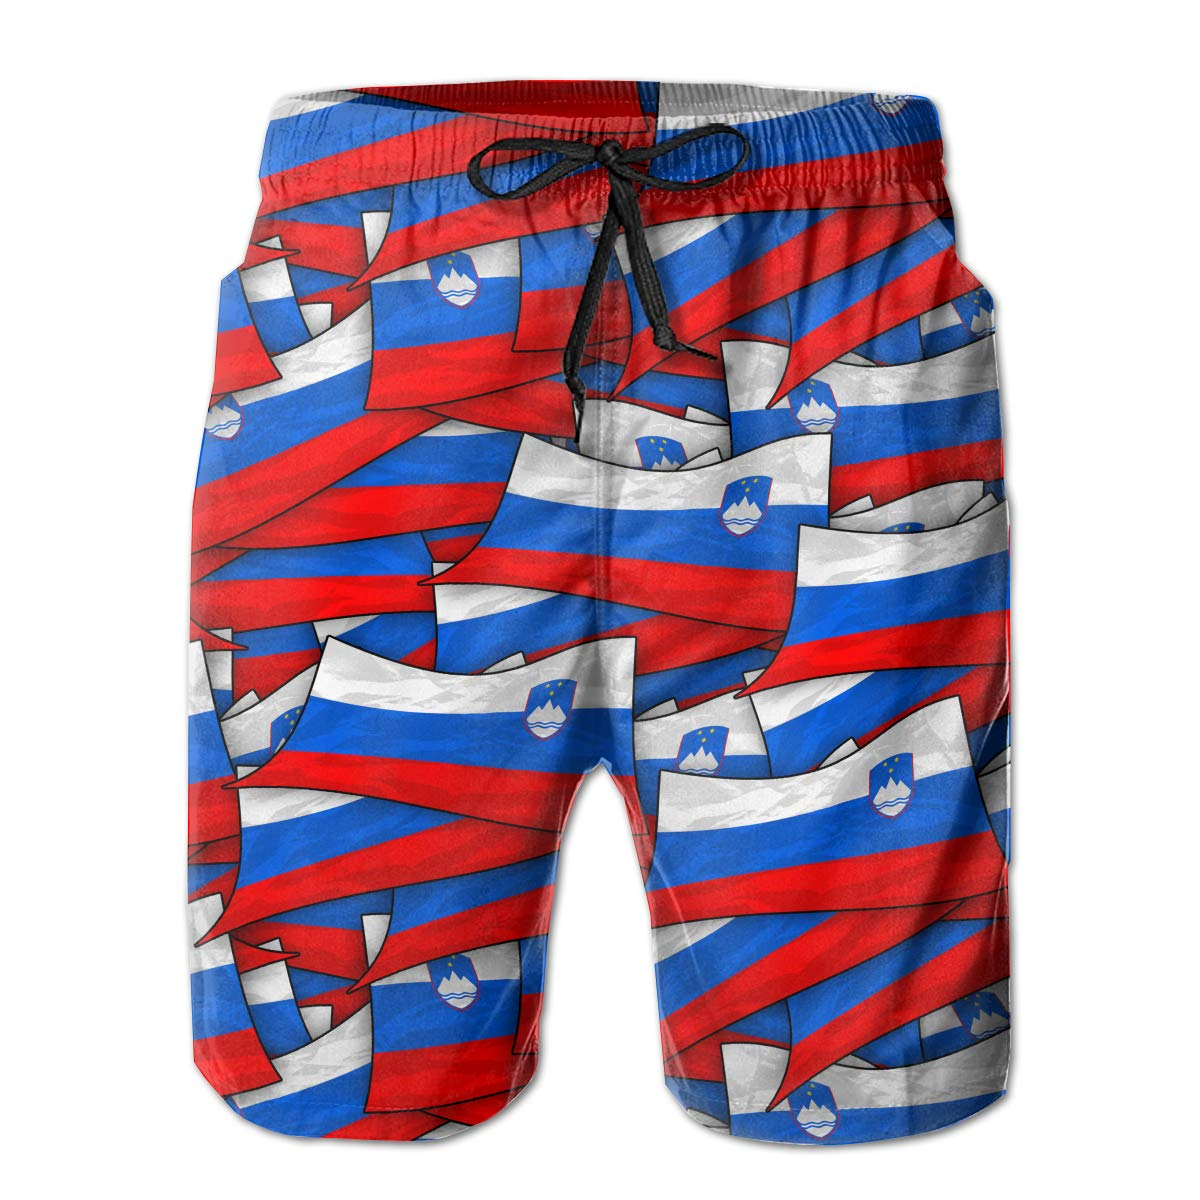 Mens Swim Trunks Slovenia Flag Wave Collage Quick Dry Beach Board Shorts with Mesh Lining